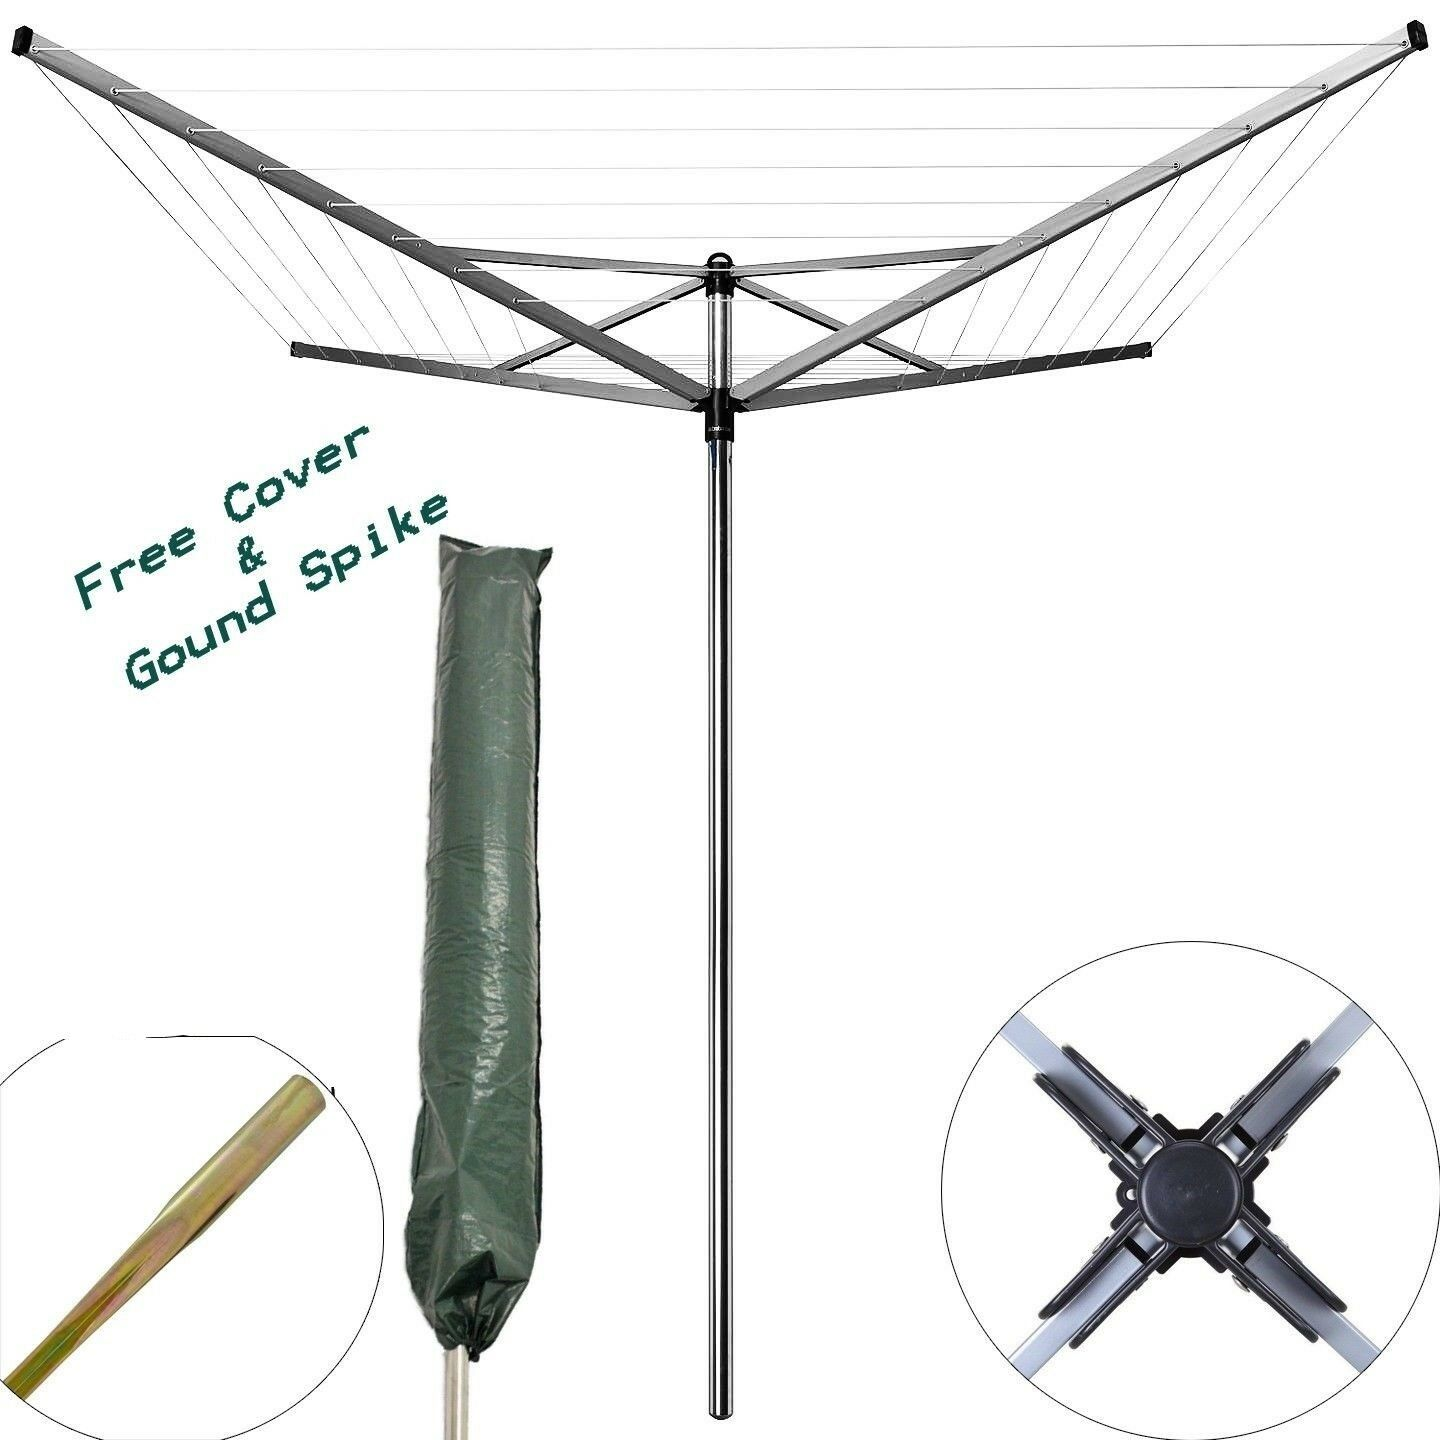 4 Arm Rotary Garden Washing Line Clothes Airer Dryer